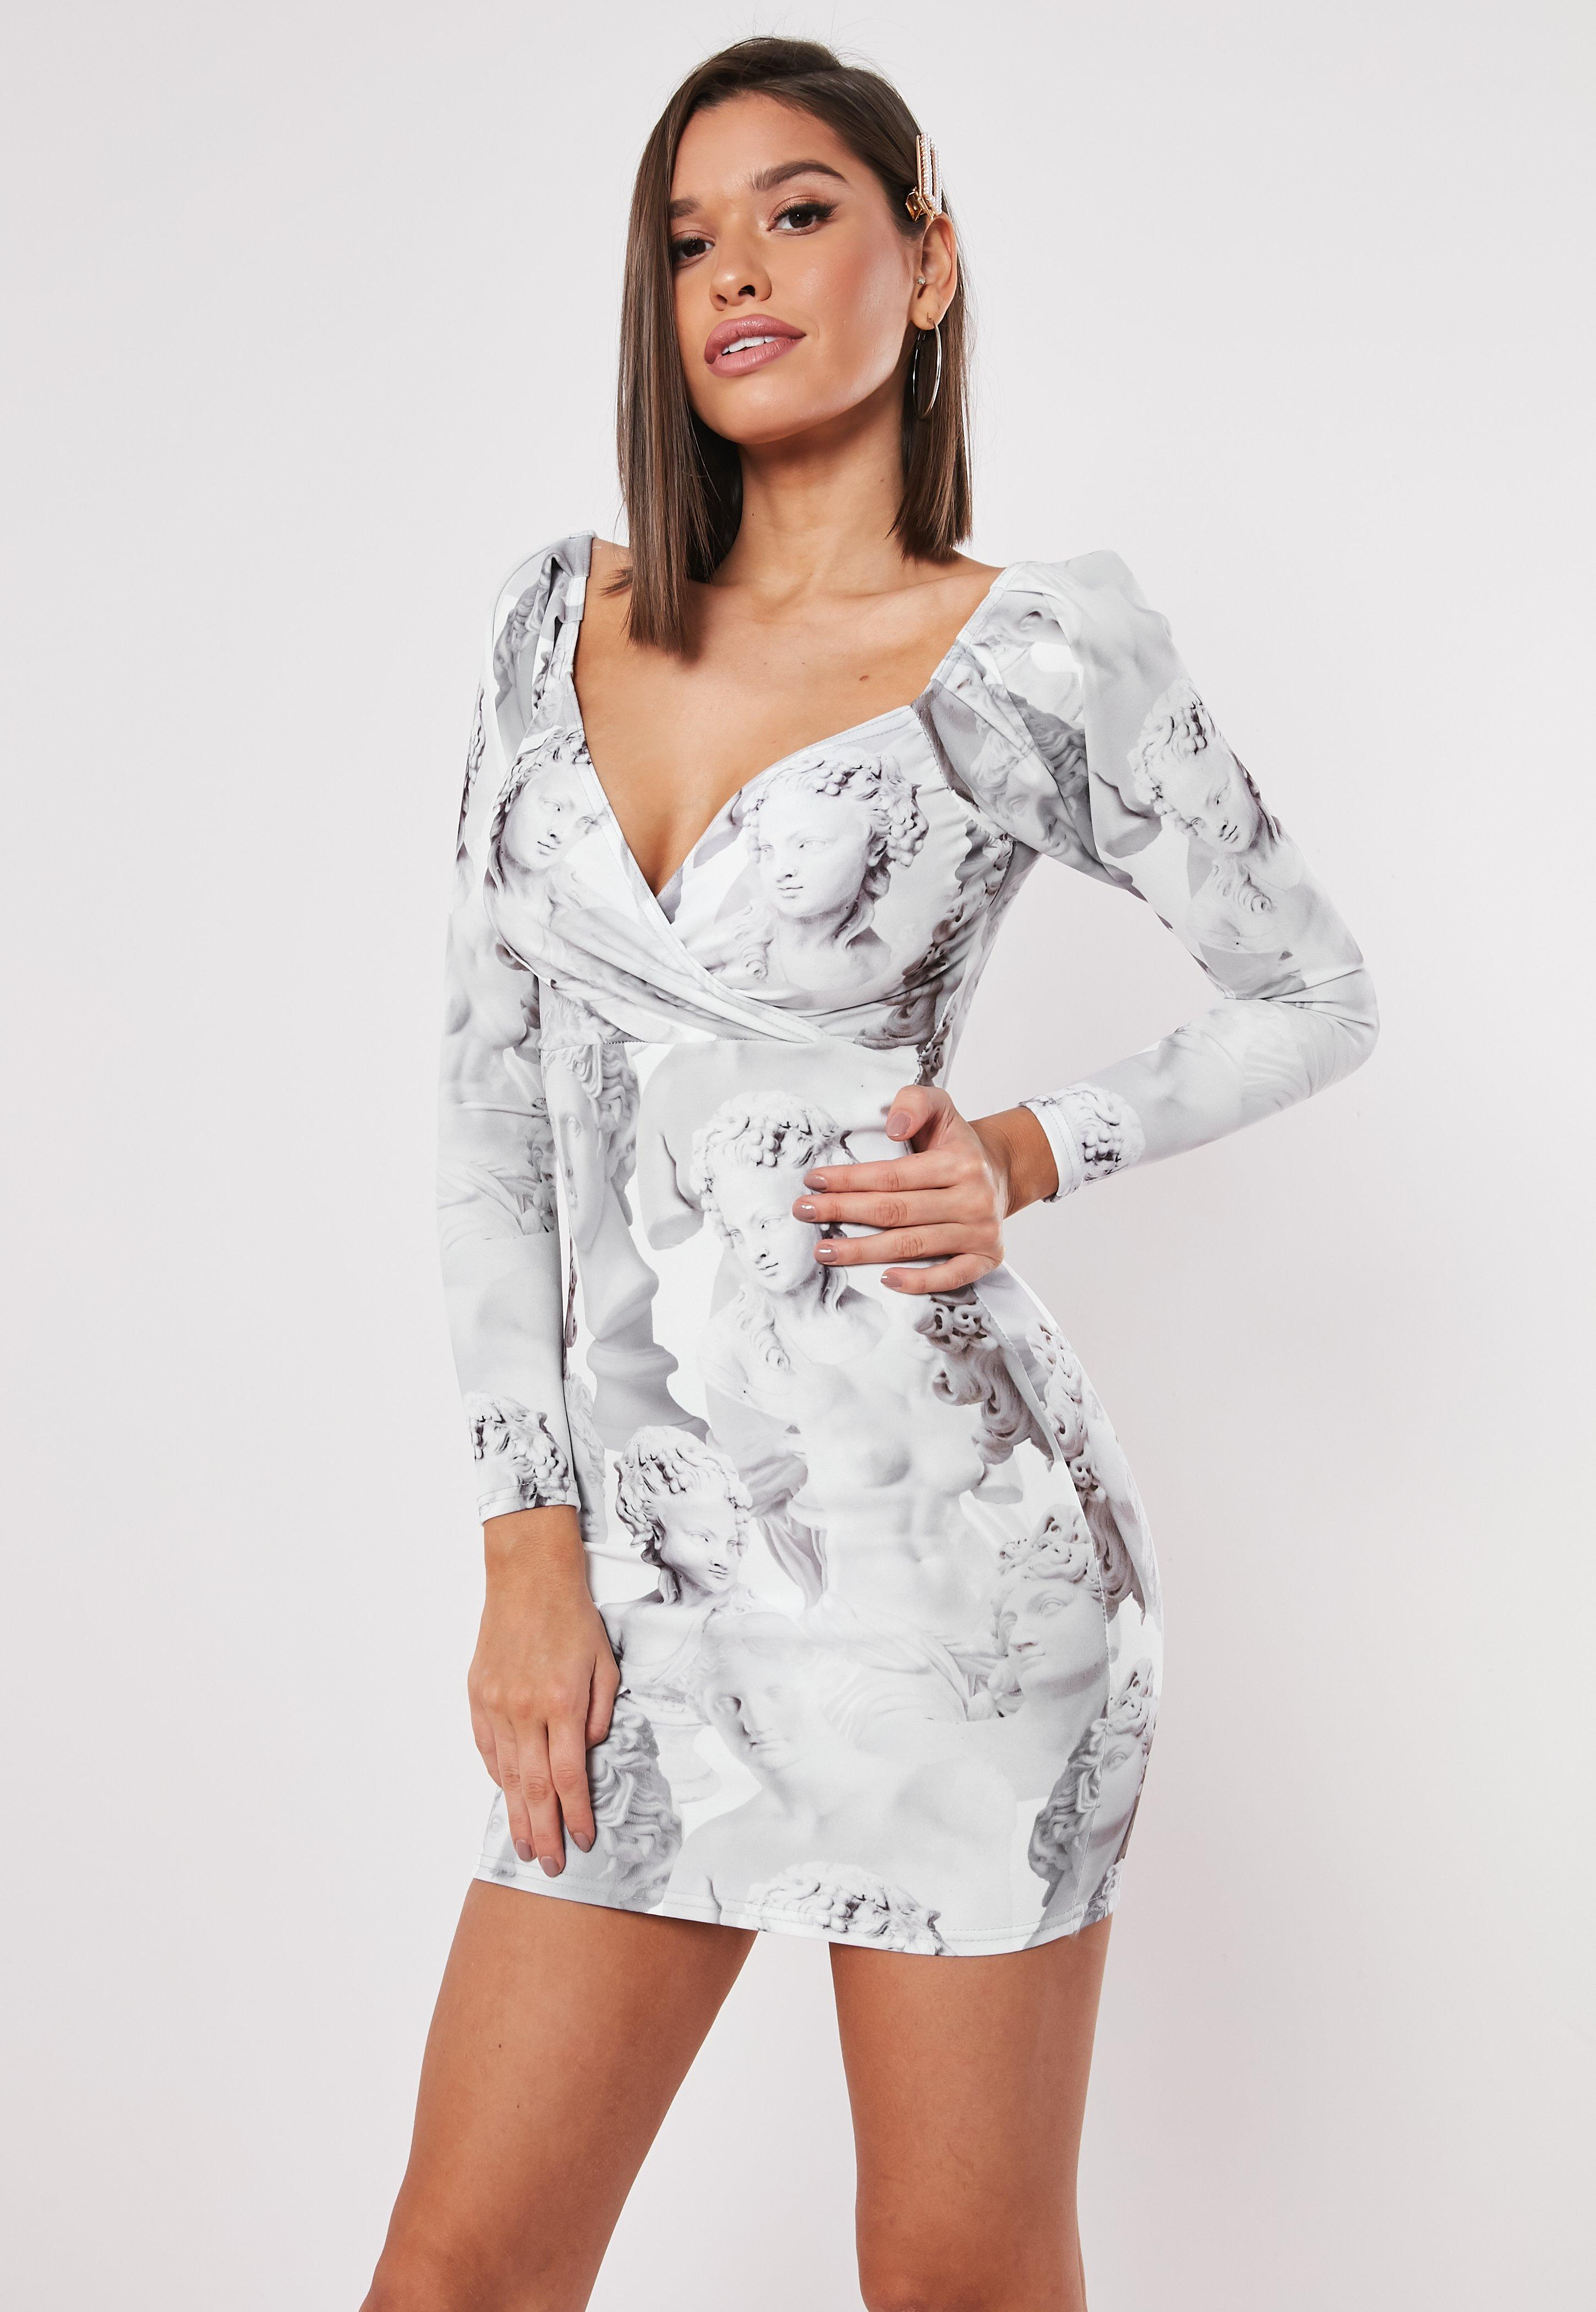 0d64f94f423a Clothes Sale - Women's Cheap Clothes UK - Missguided